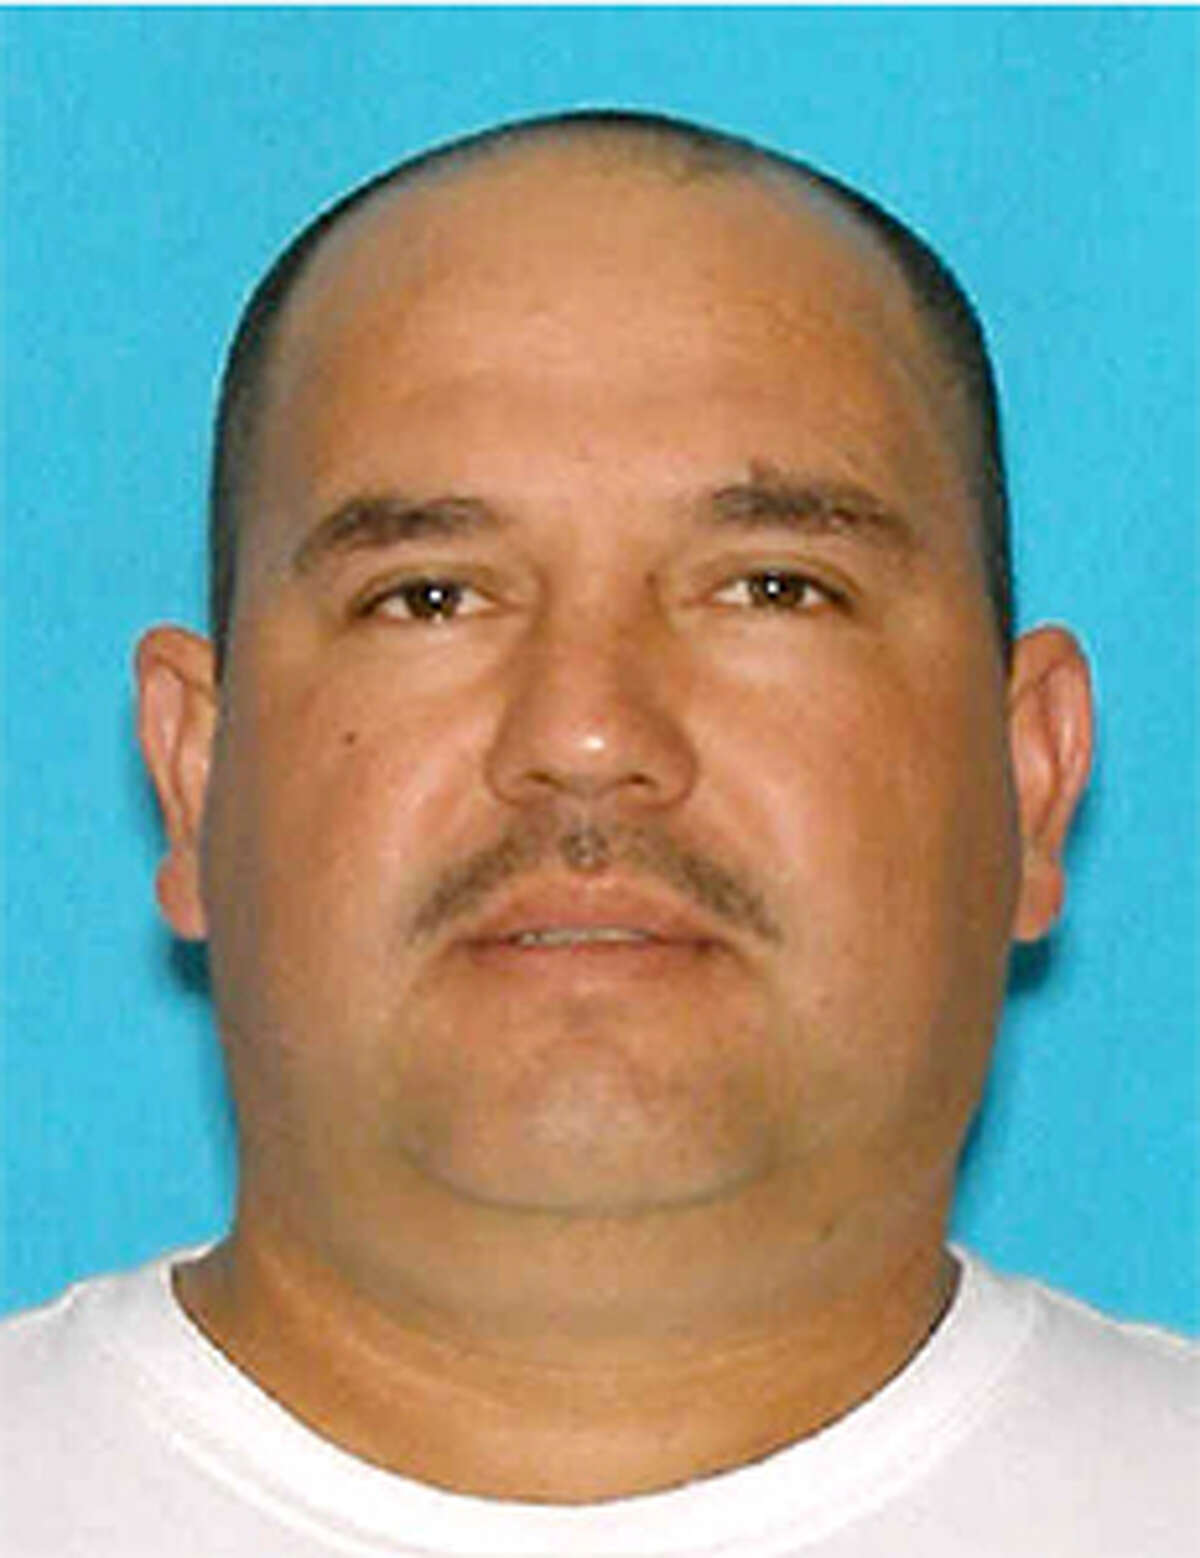 Alberto Orozco-Rodriguez, 41, is wanted for drug crimes. His last known address is in Washington state. Tips may be made to the U.S. Marshals Service at 877-926-8332 (877-WANTED2).